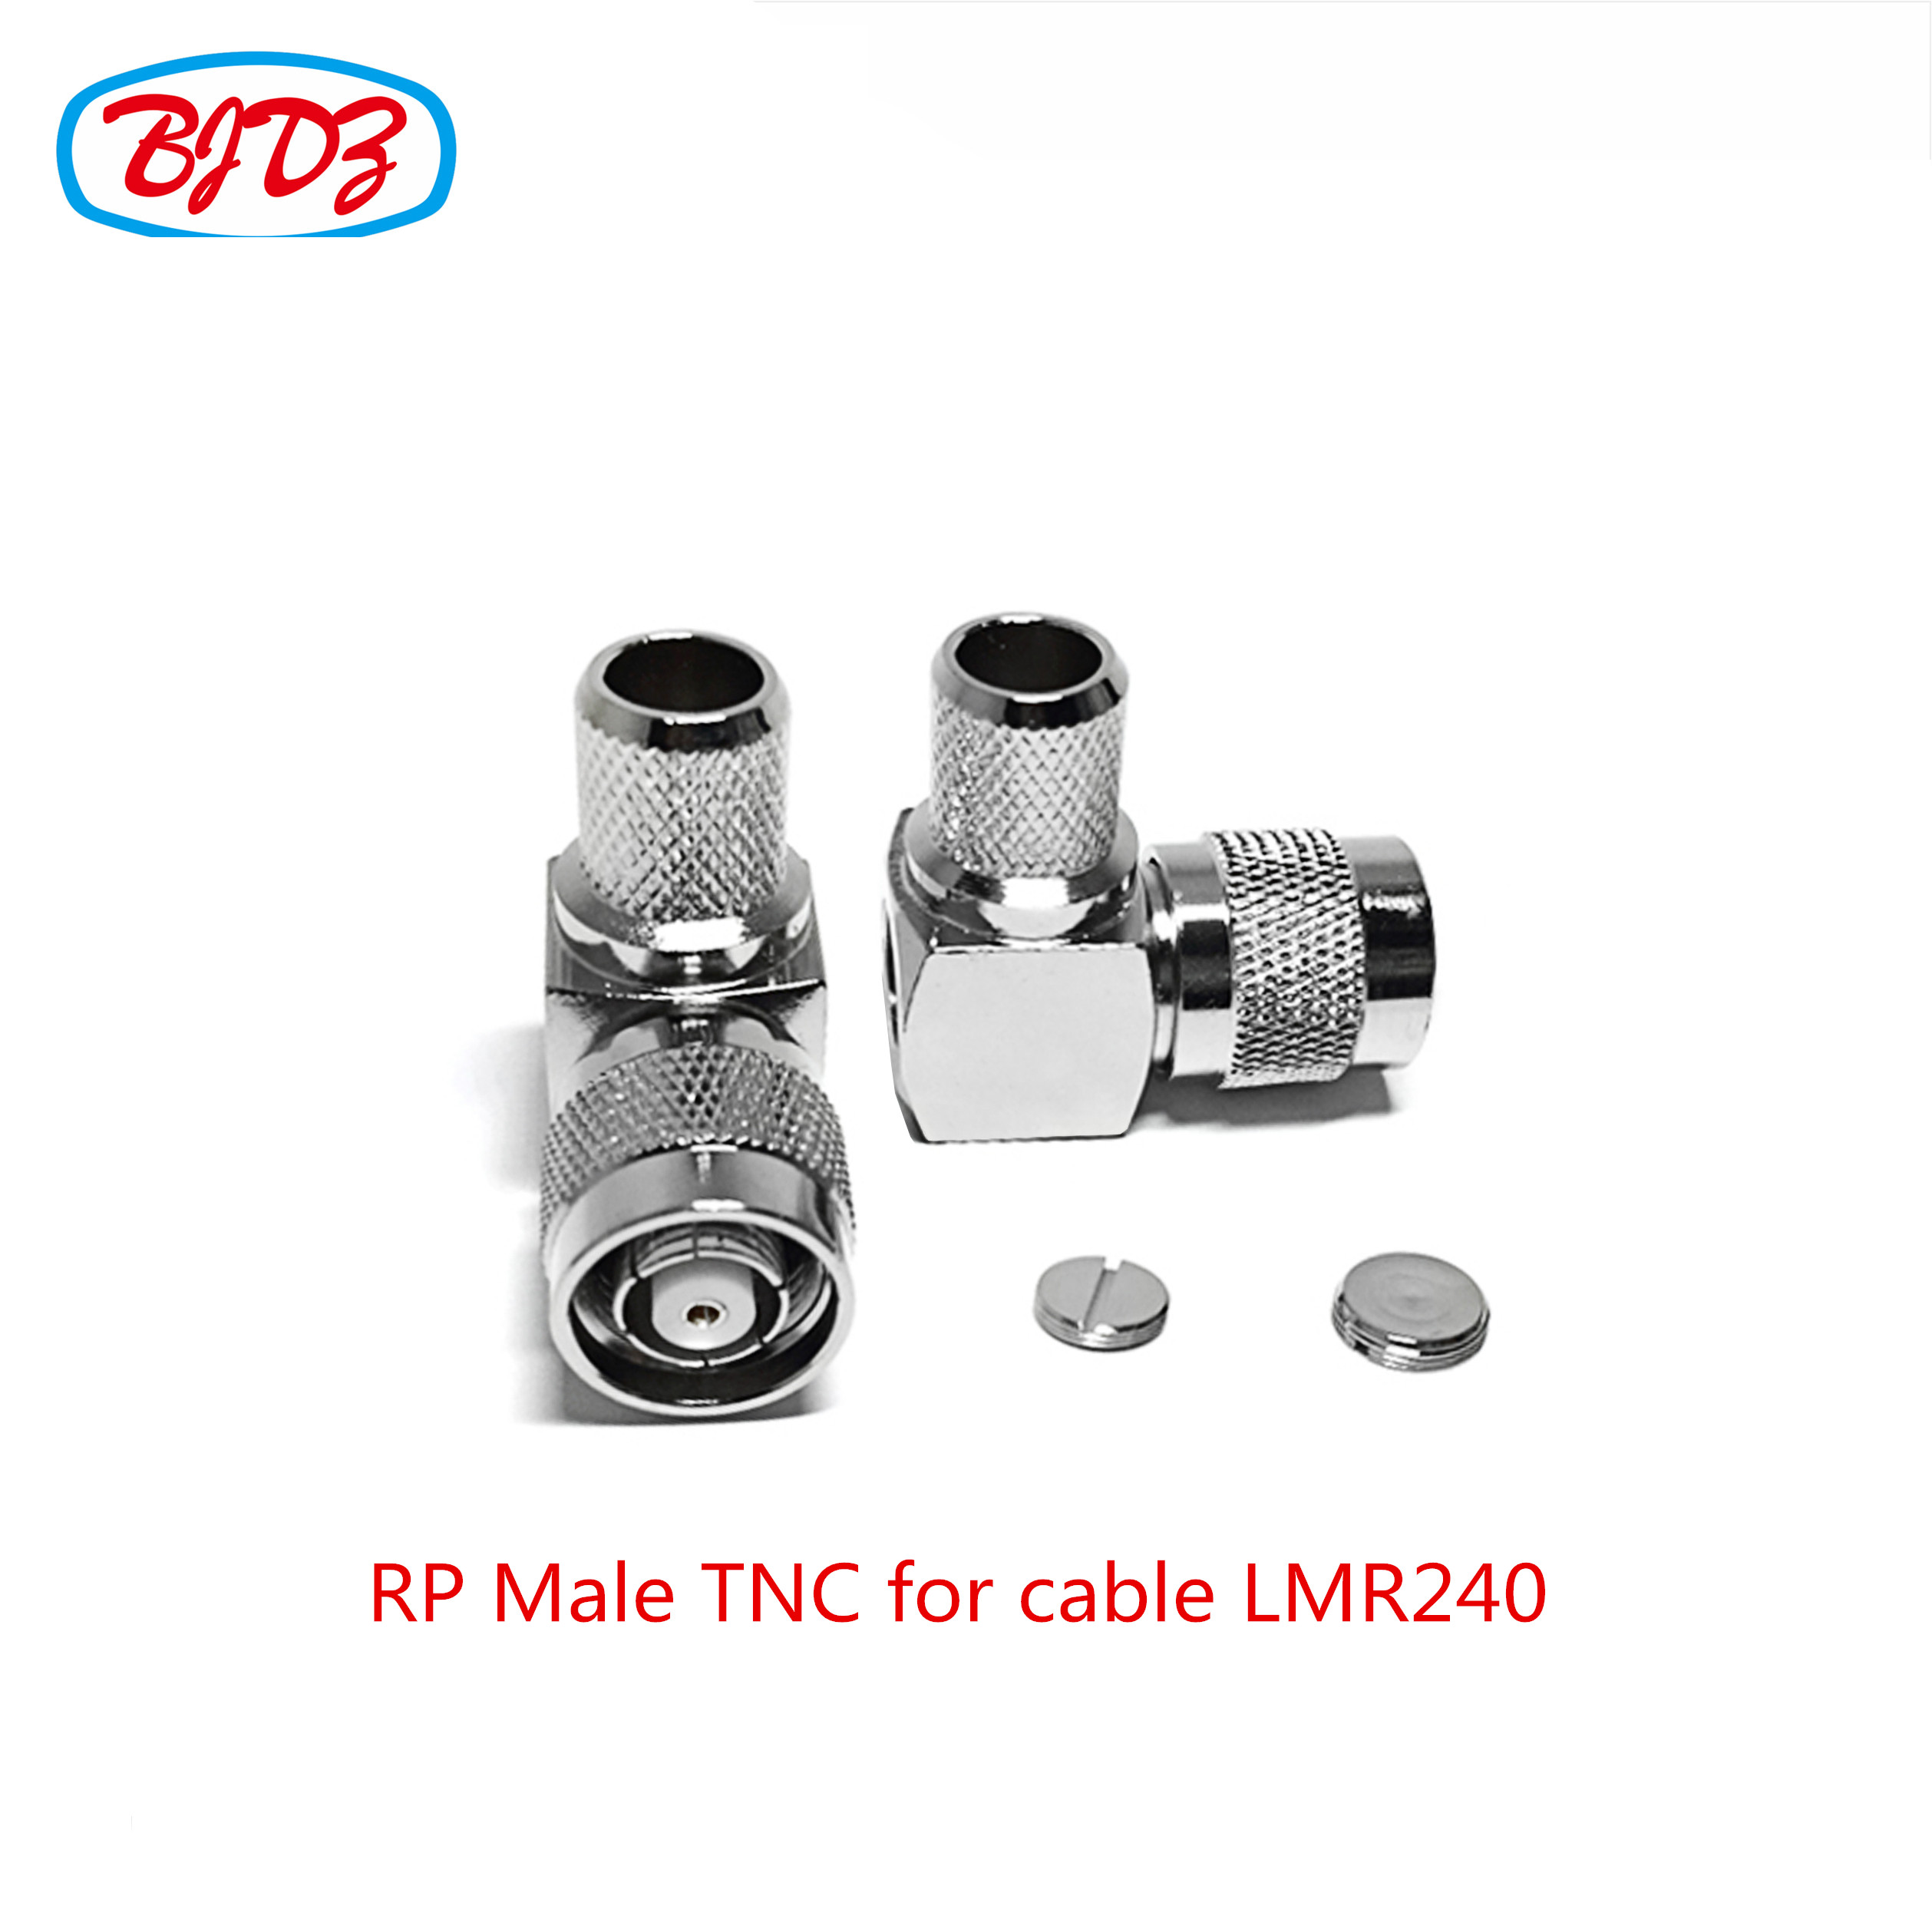 Waterproof rf connector TNC female bulkhead connector for cable LMR100 RG174 RG136 RG188 G178